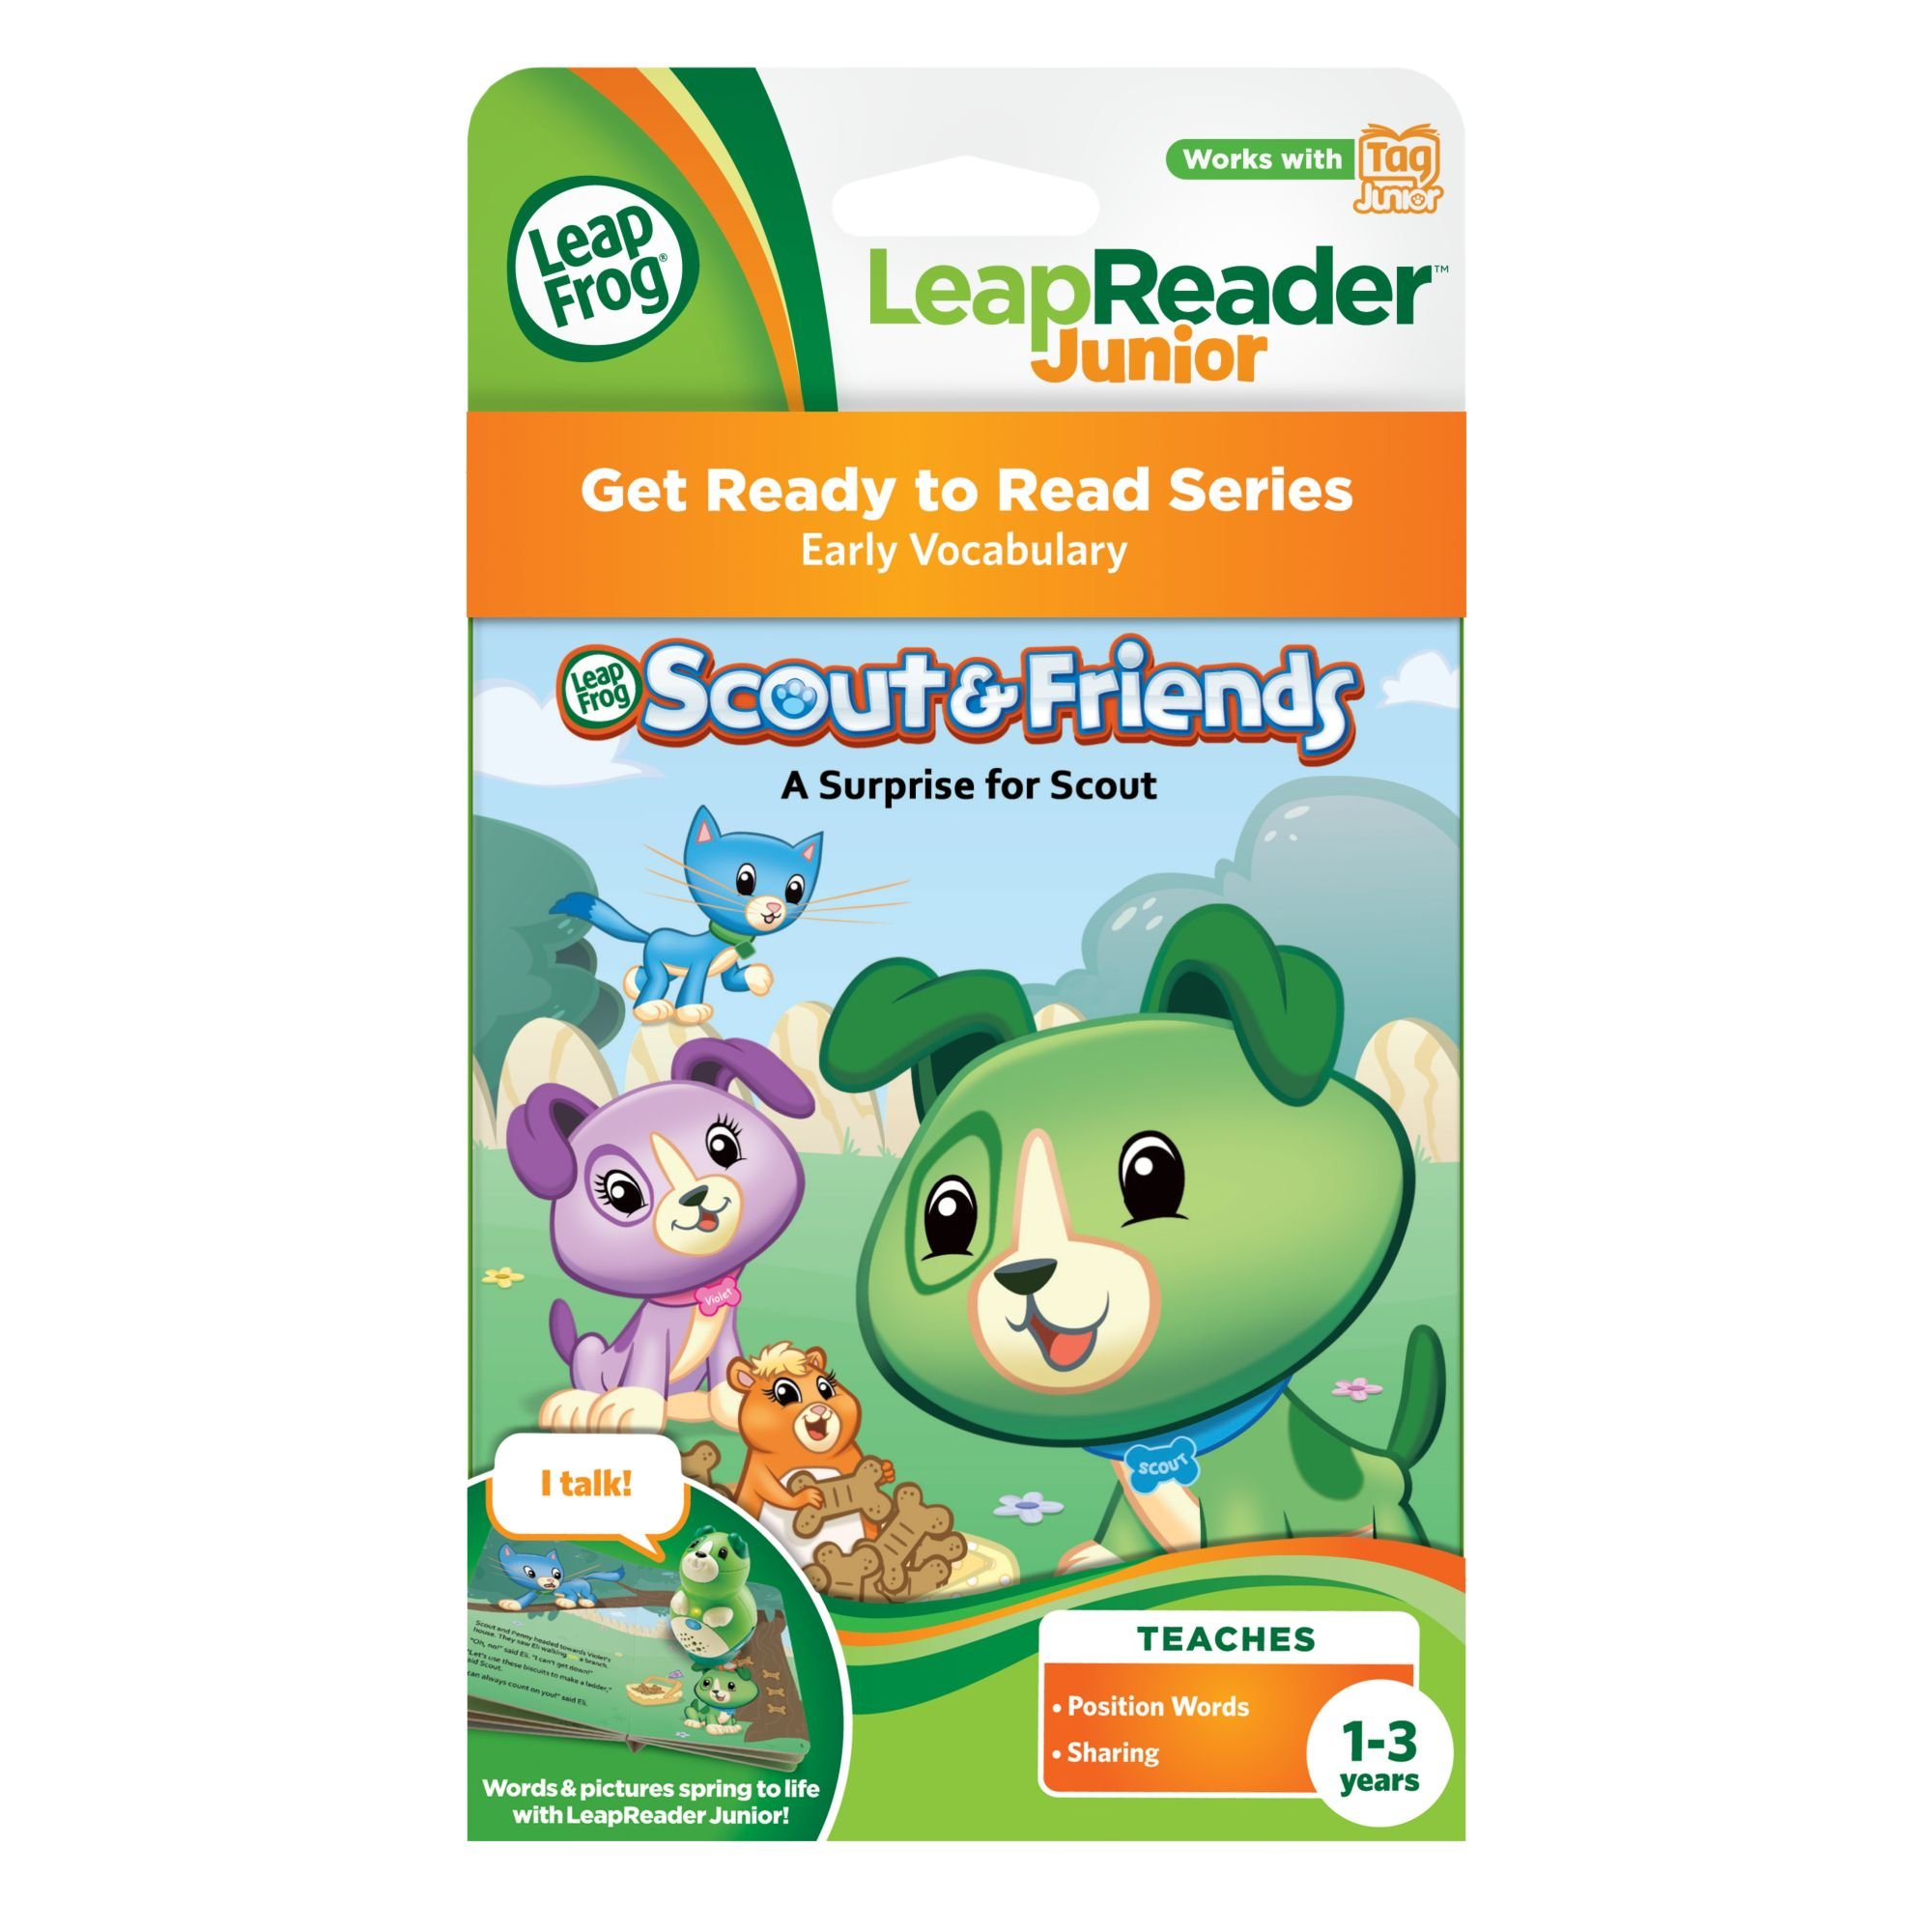 LeapFrog Tag Junior Book Scout And Friends: A Surprise for Scout (works with LeapReader Junior) by LeapFrog (Image #3)